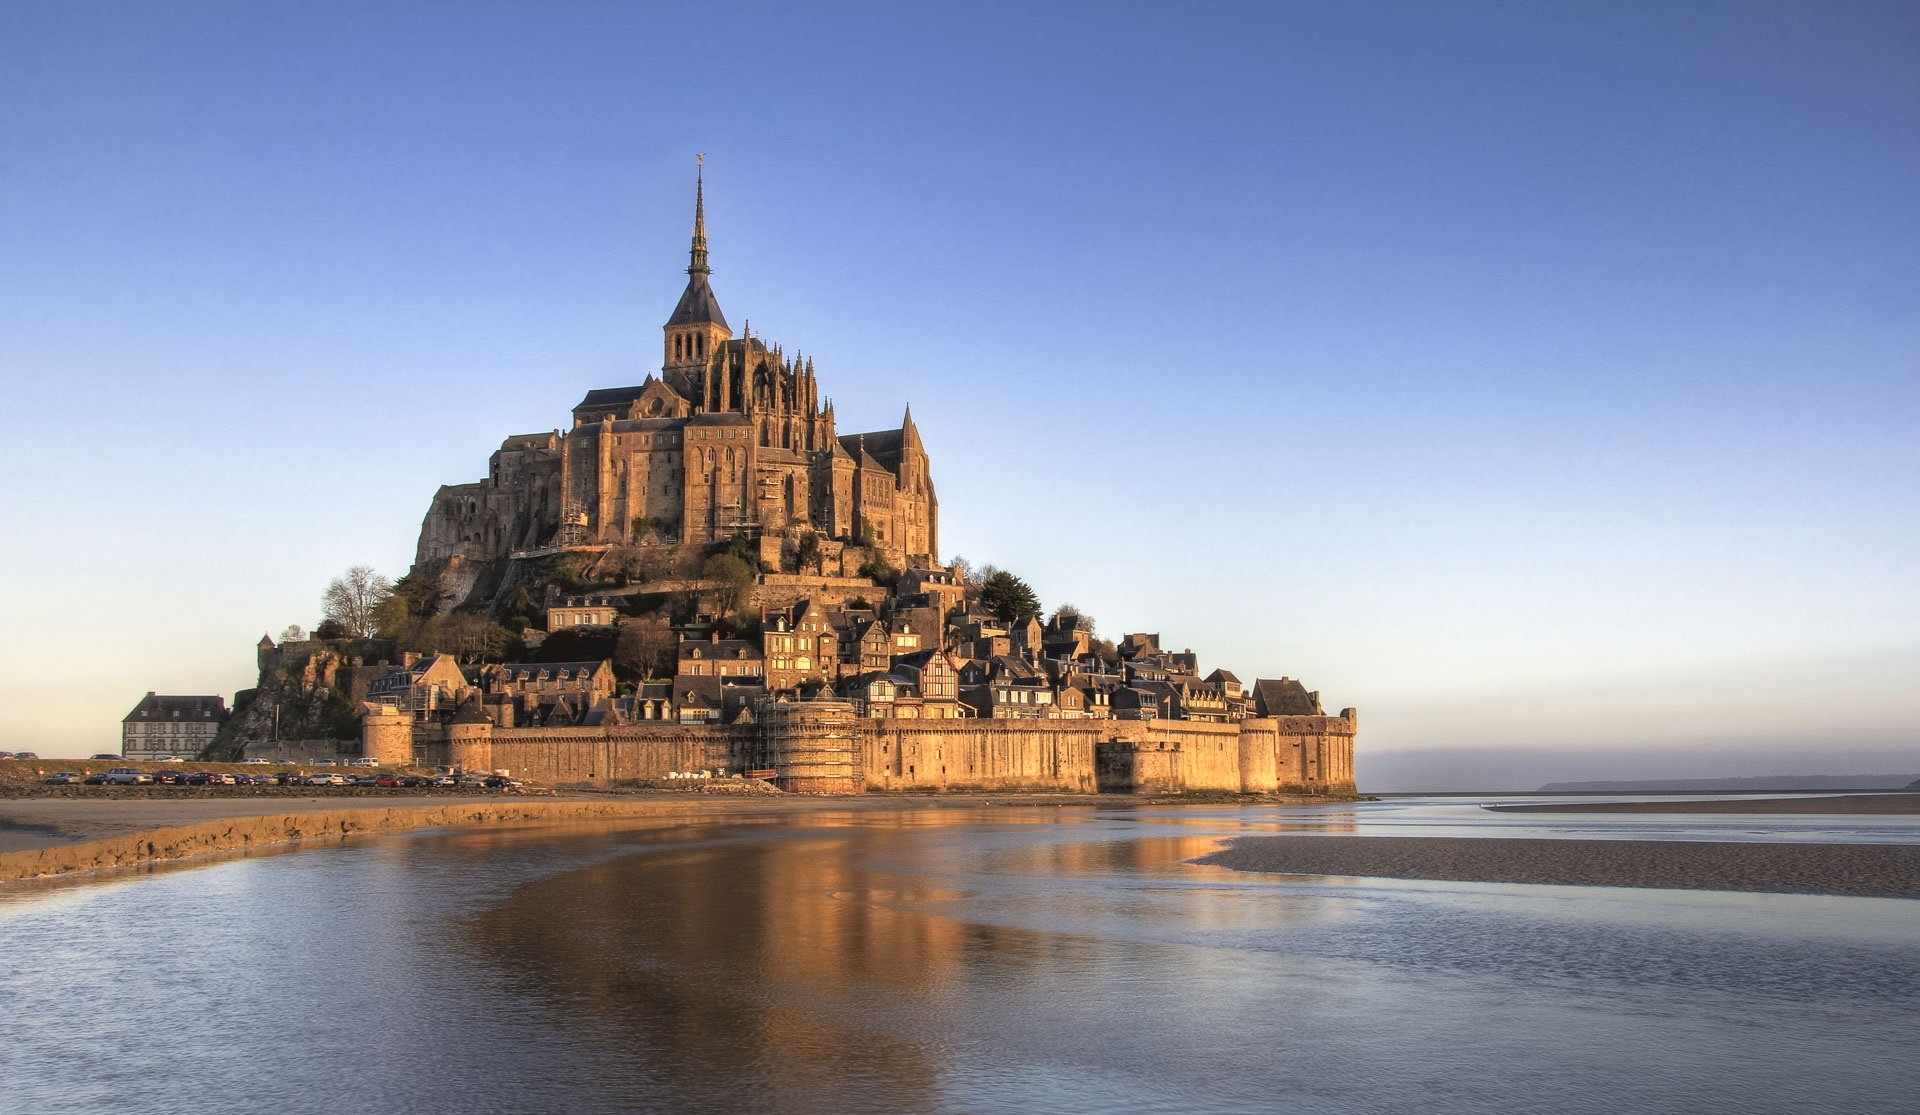 Hotel Luxe Mont Saint Michel To Discover Absolutely